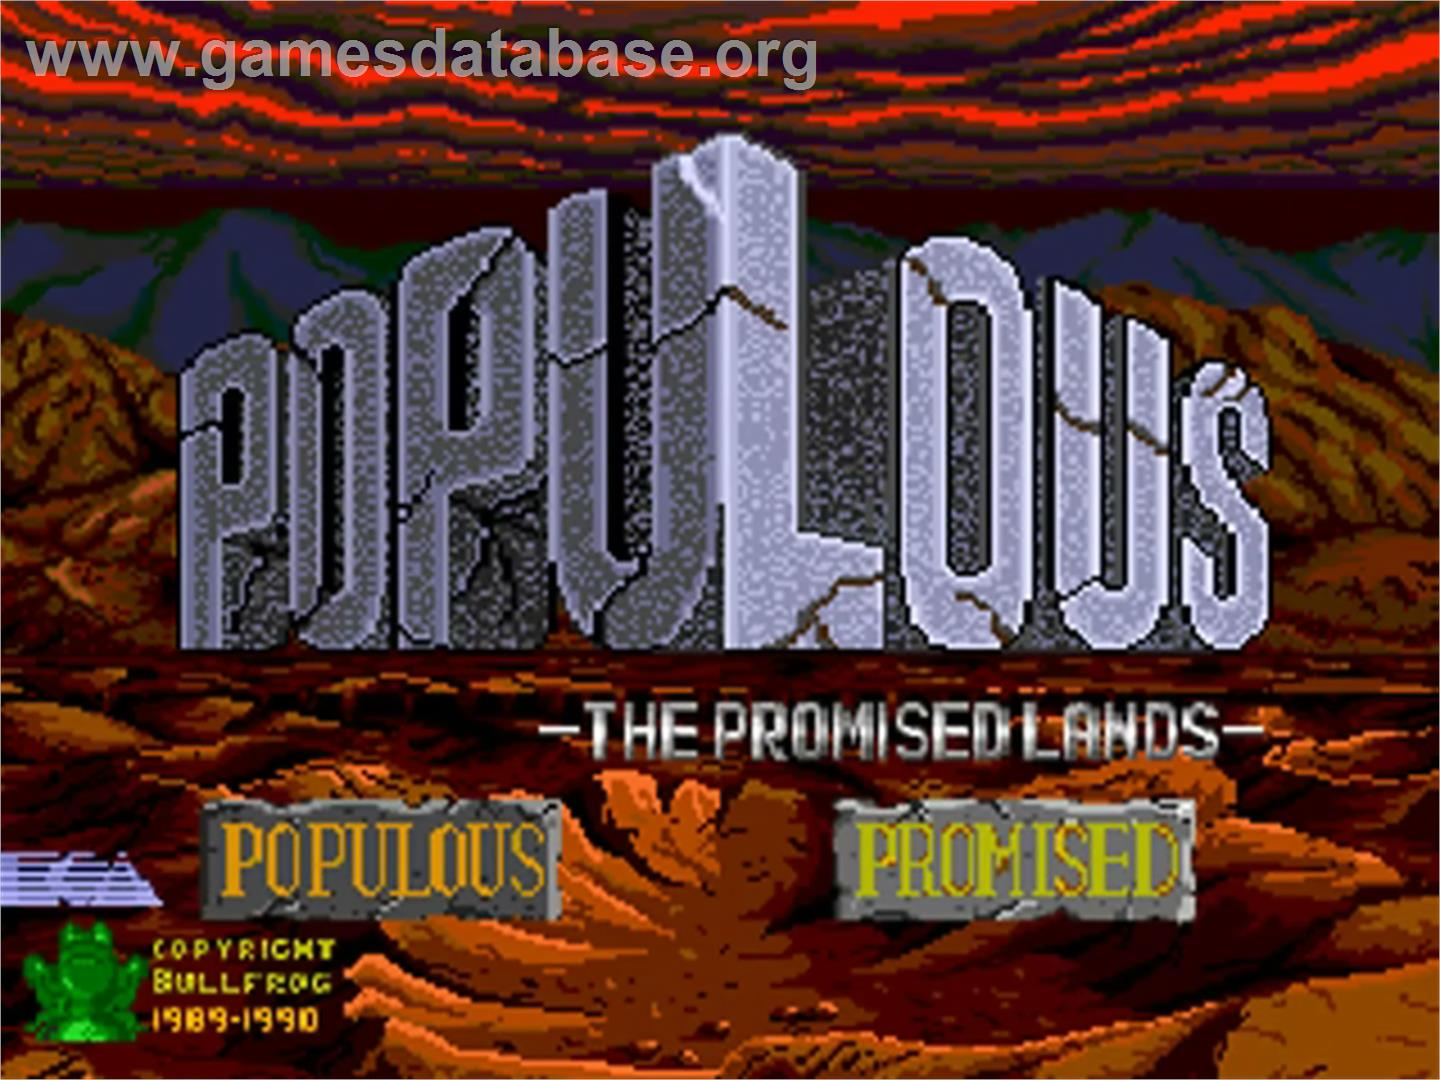 Populous: The Promised Lands - NEC PC Engine CD - Artwork - Title Screen